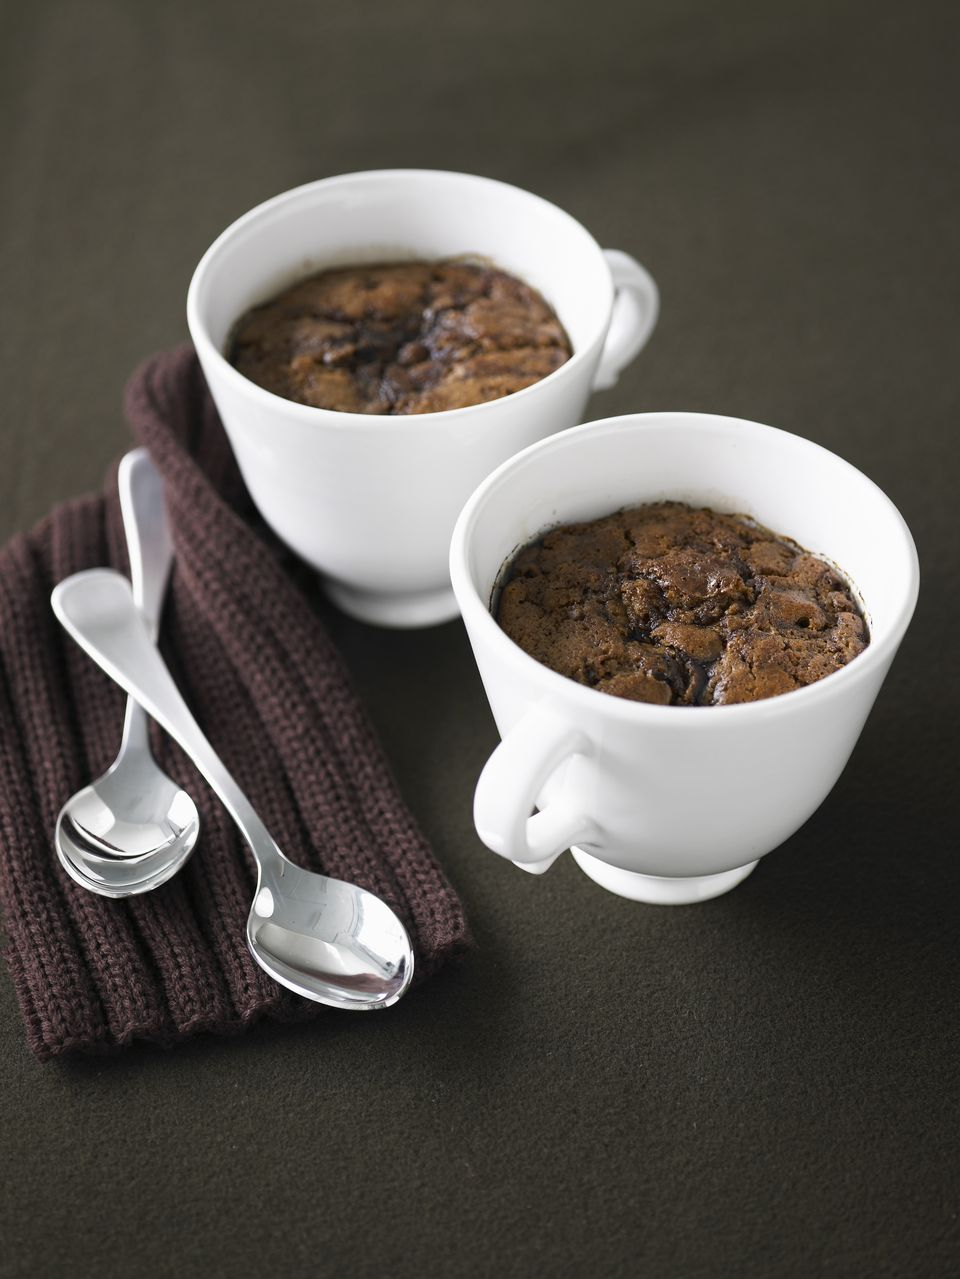 Chocolate sponge fondant cake served in a cup